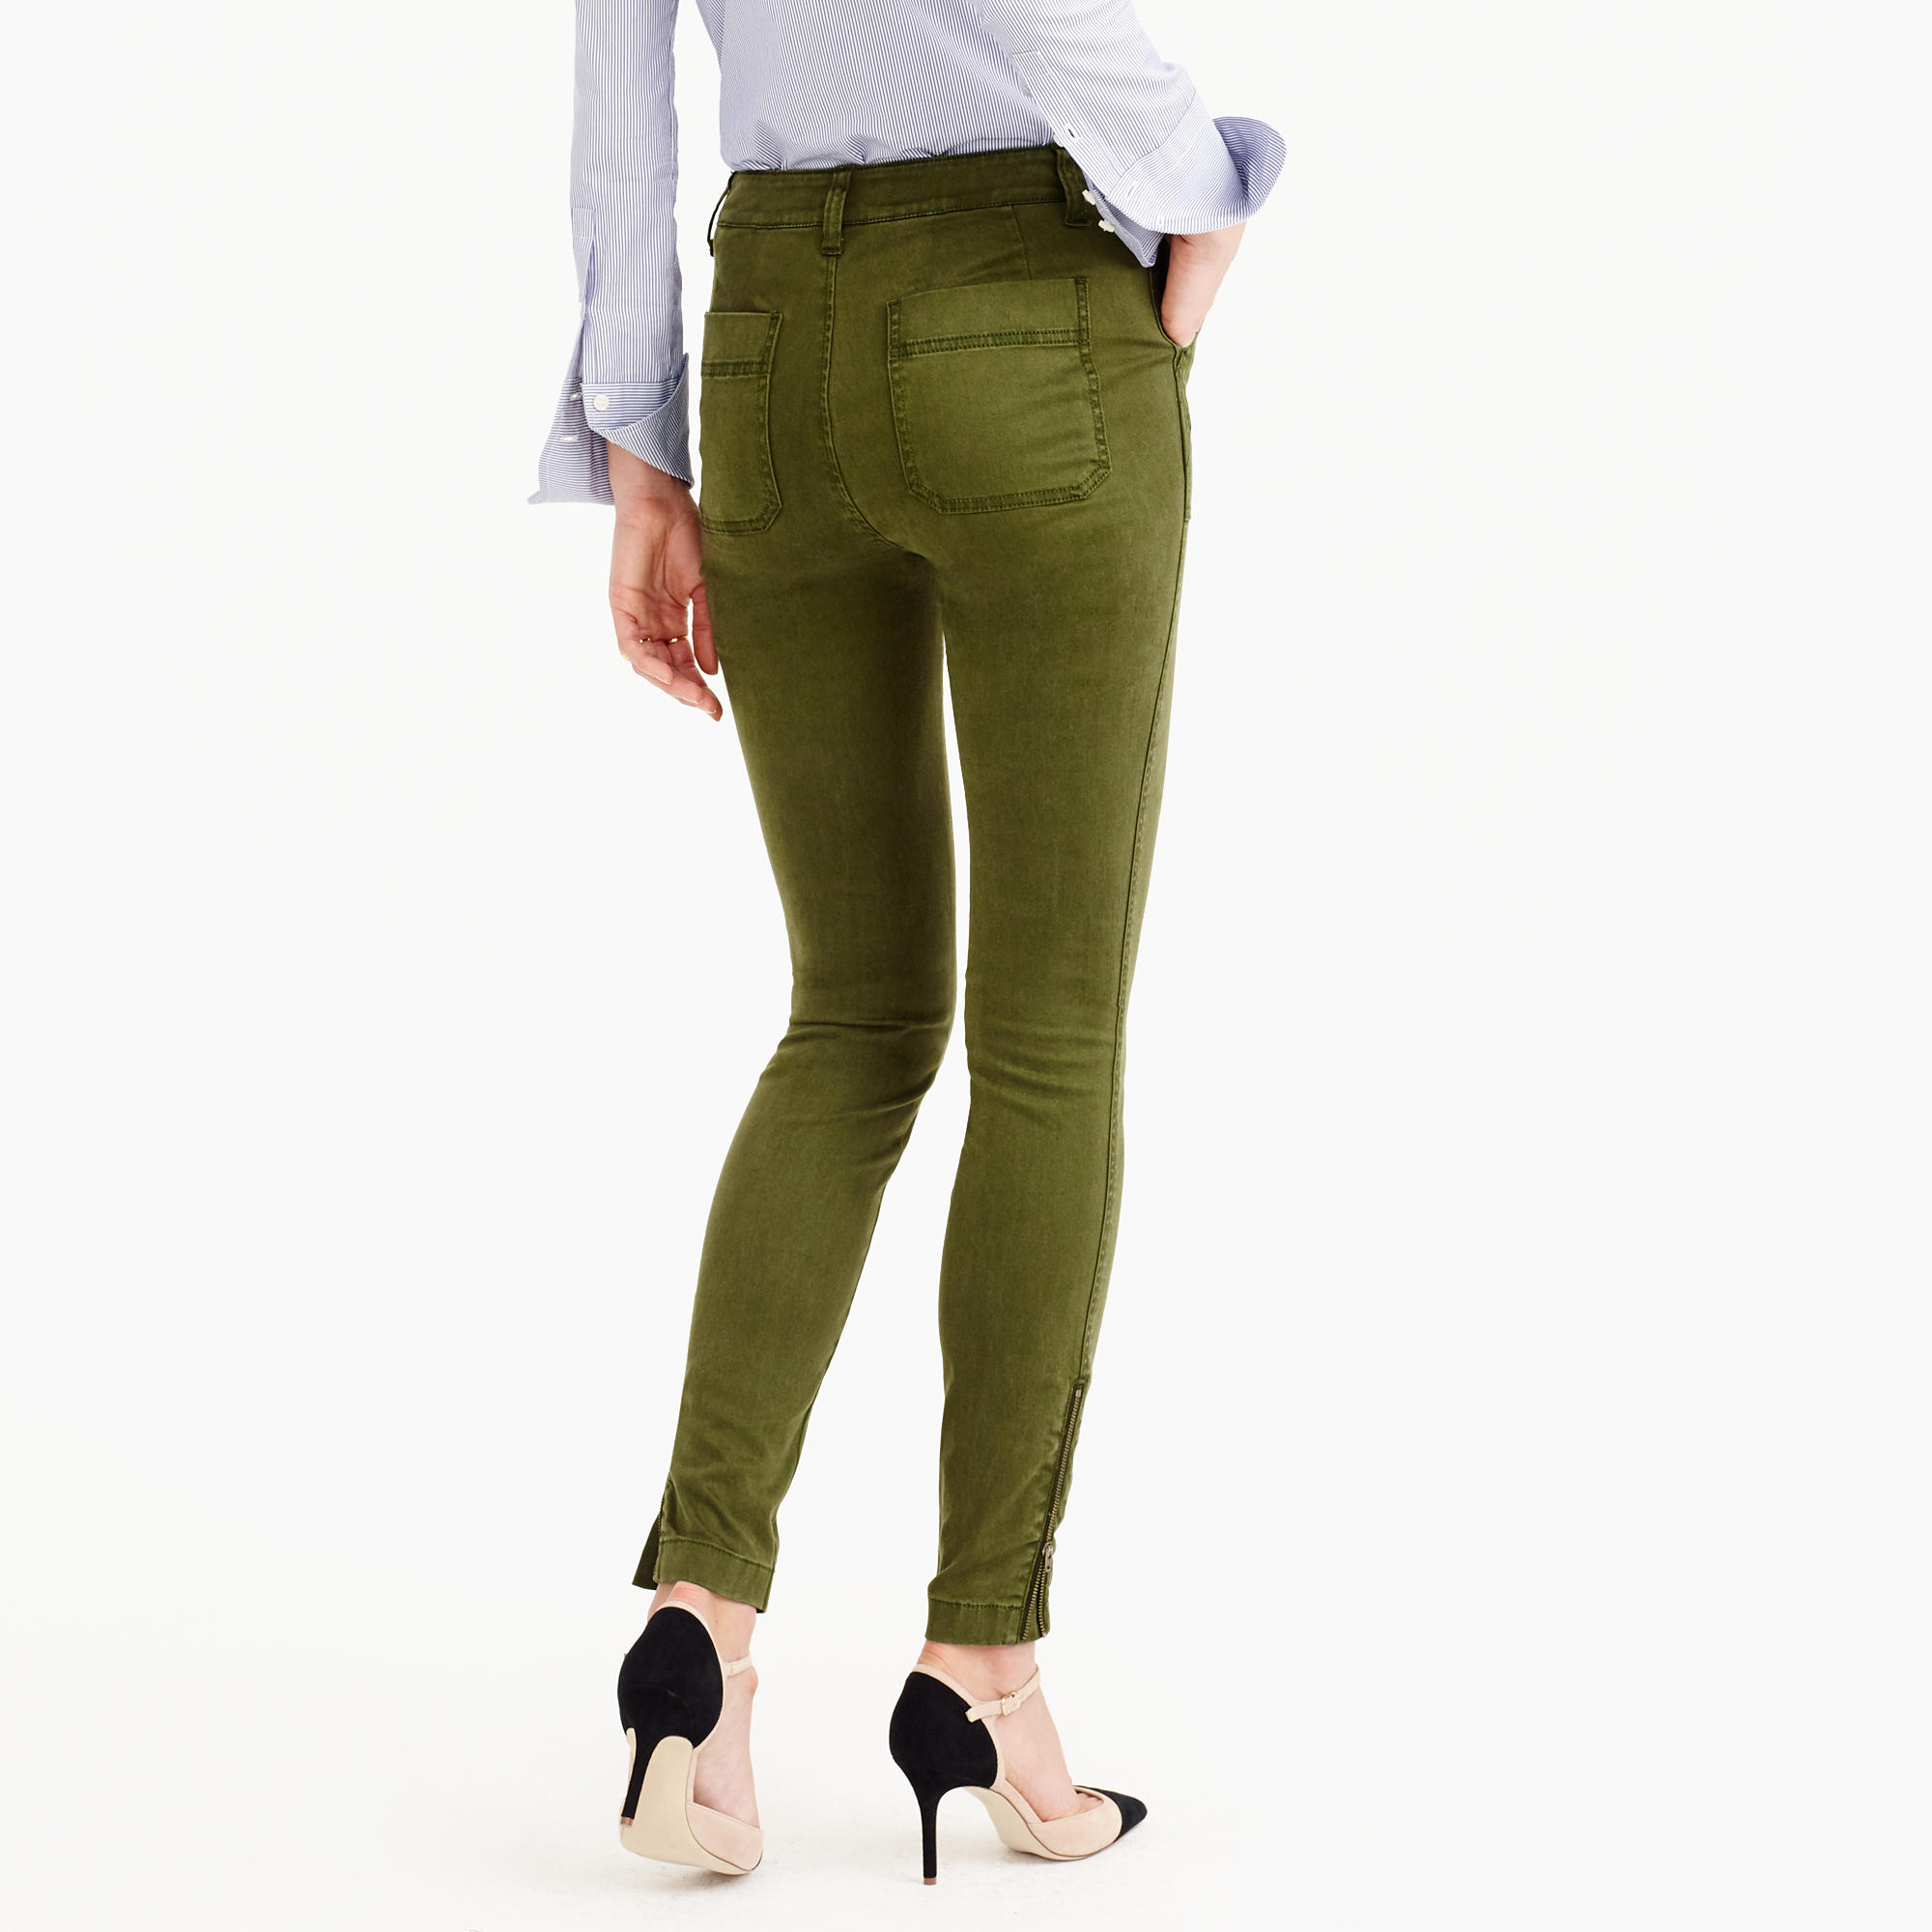 Skinny Stretch Cargo Pant With Zippers : Women's Pants | J.Crew